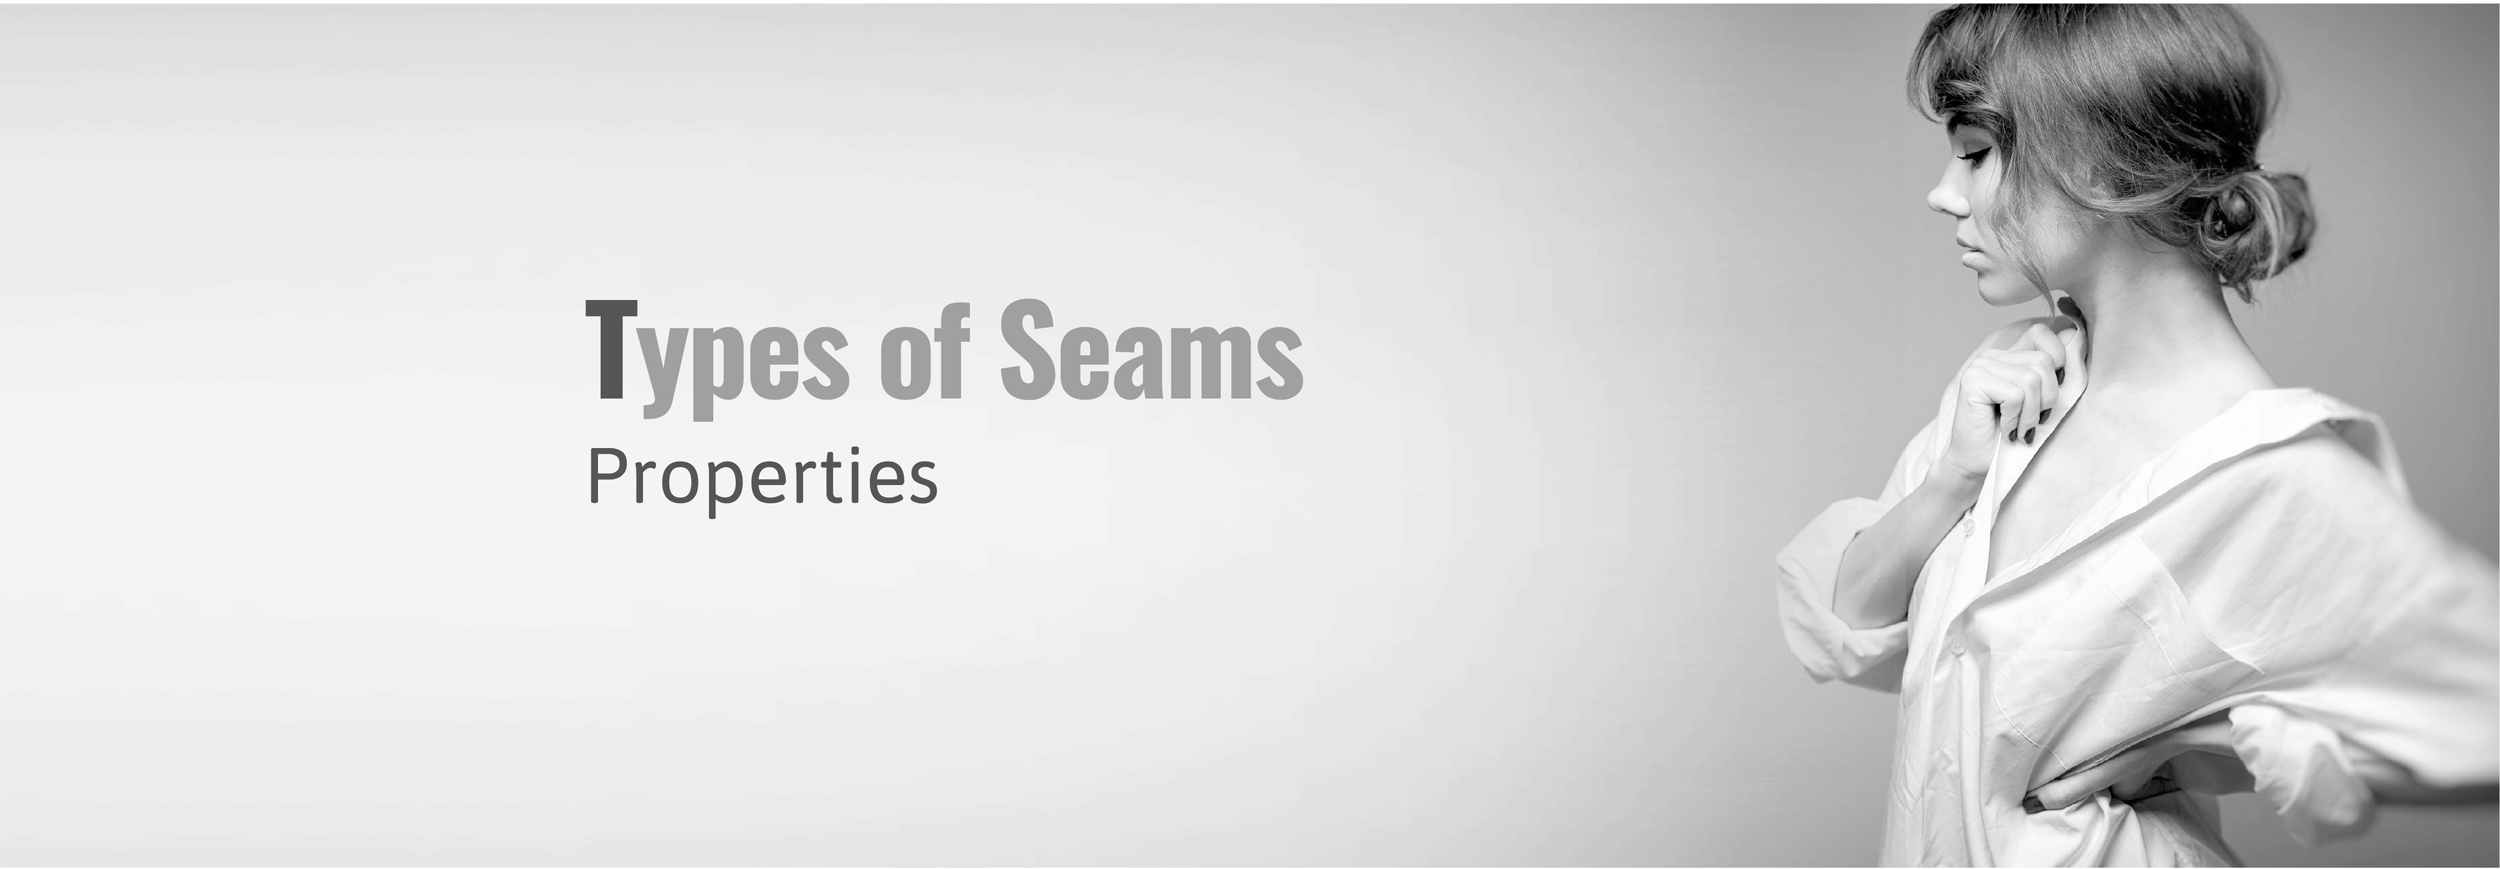 Types of Seams:Properties